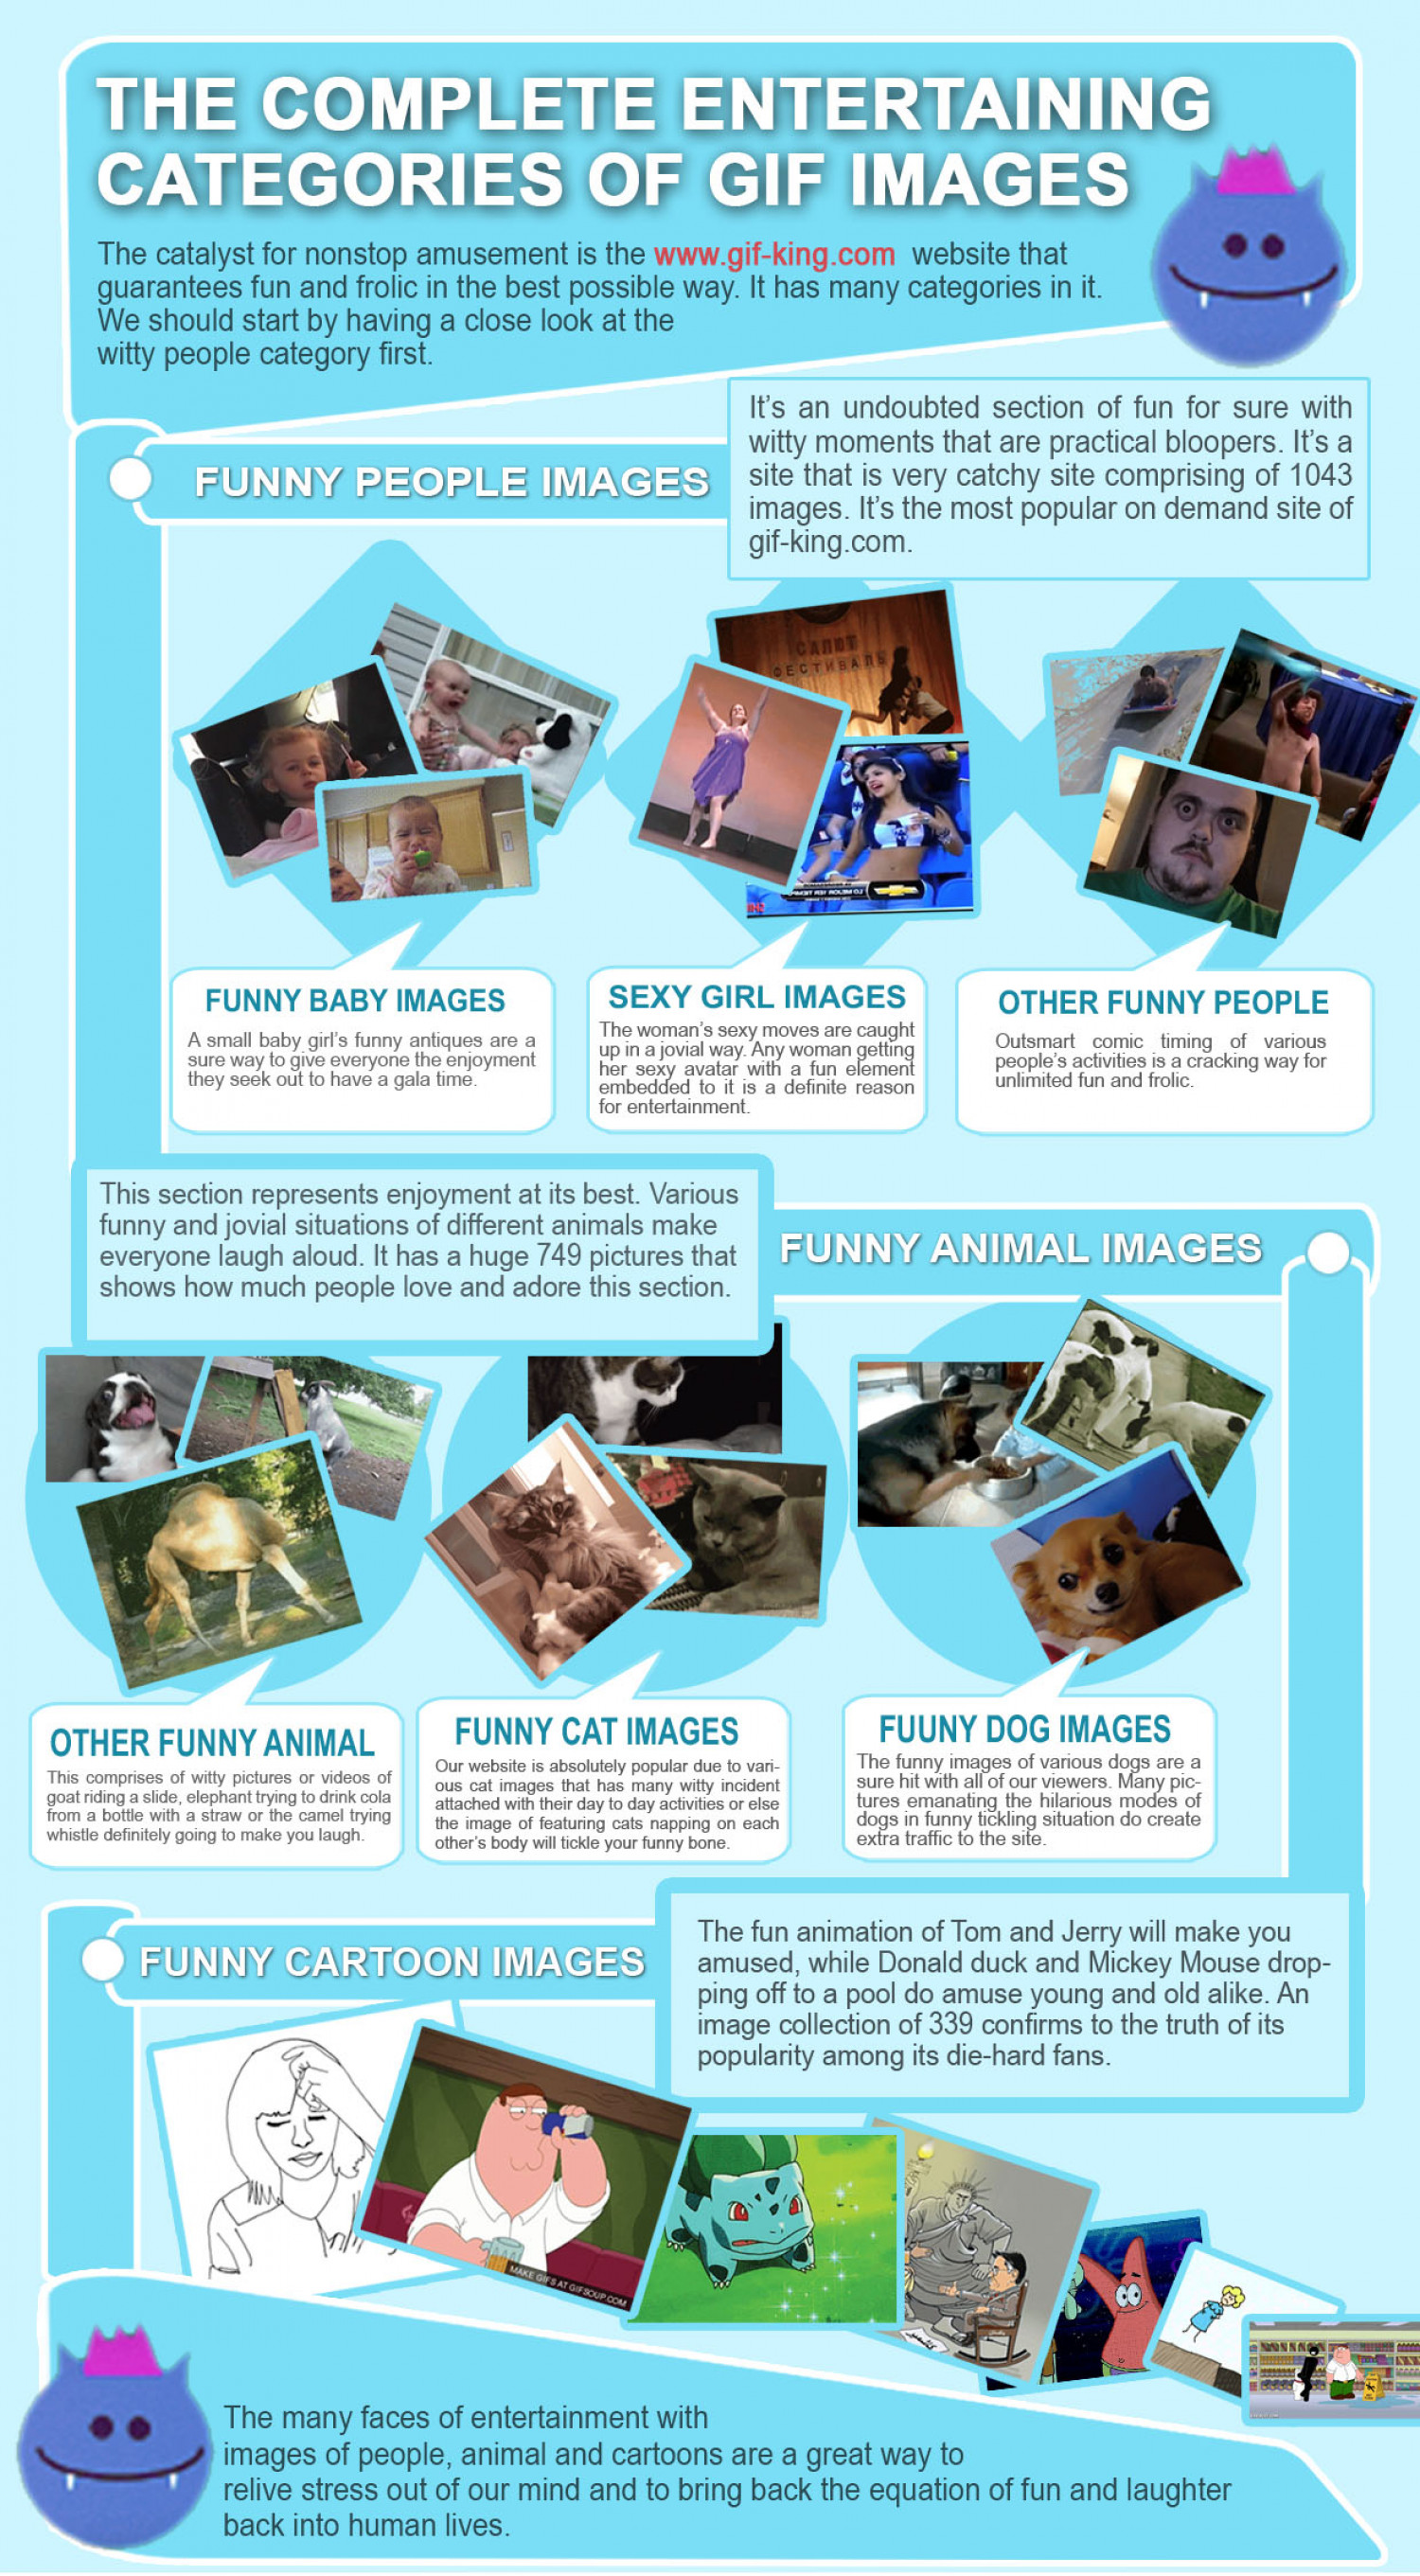 The Complete Entertaining Categories Of GIF Images Infographic